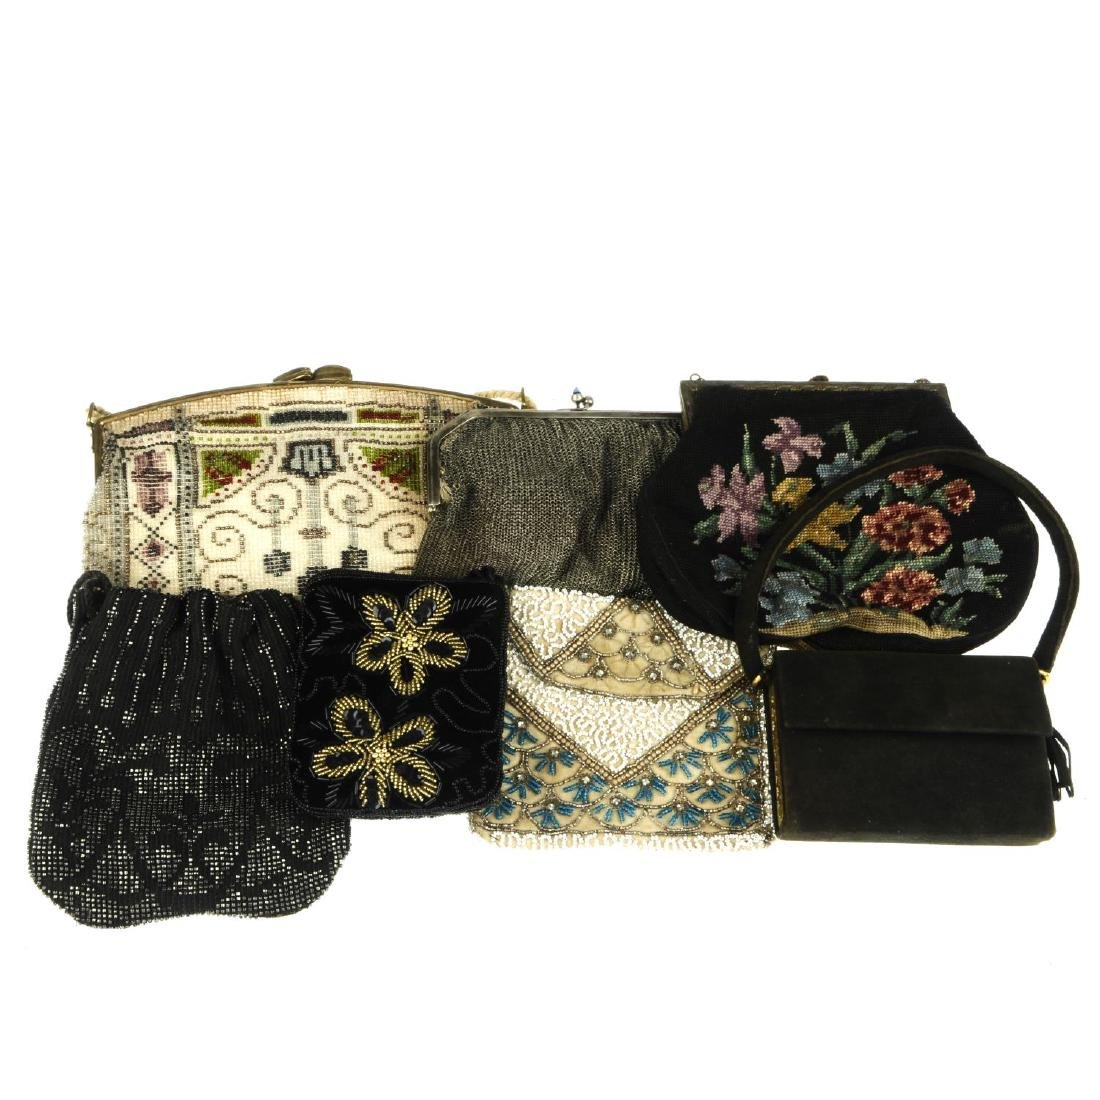 A selection of vintage handbags. To include an early